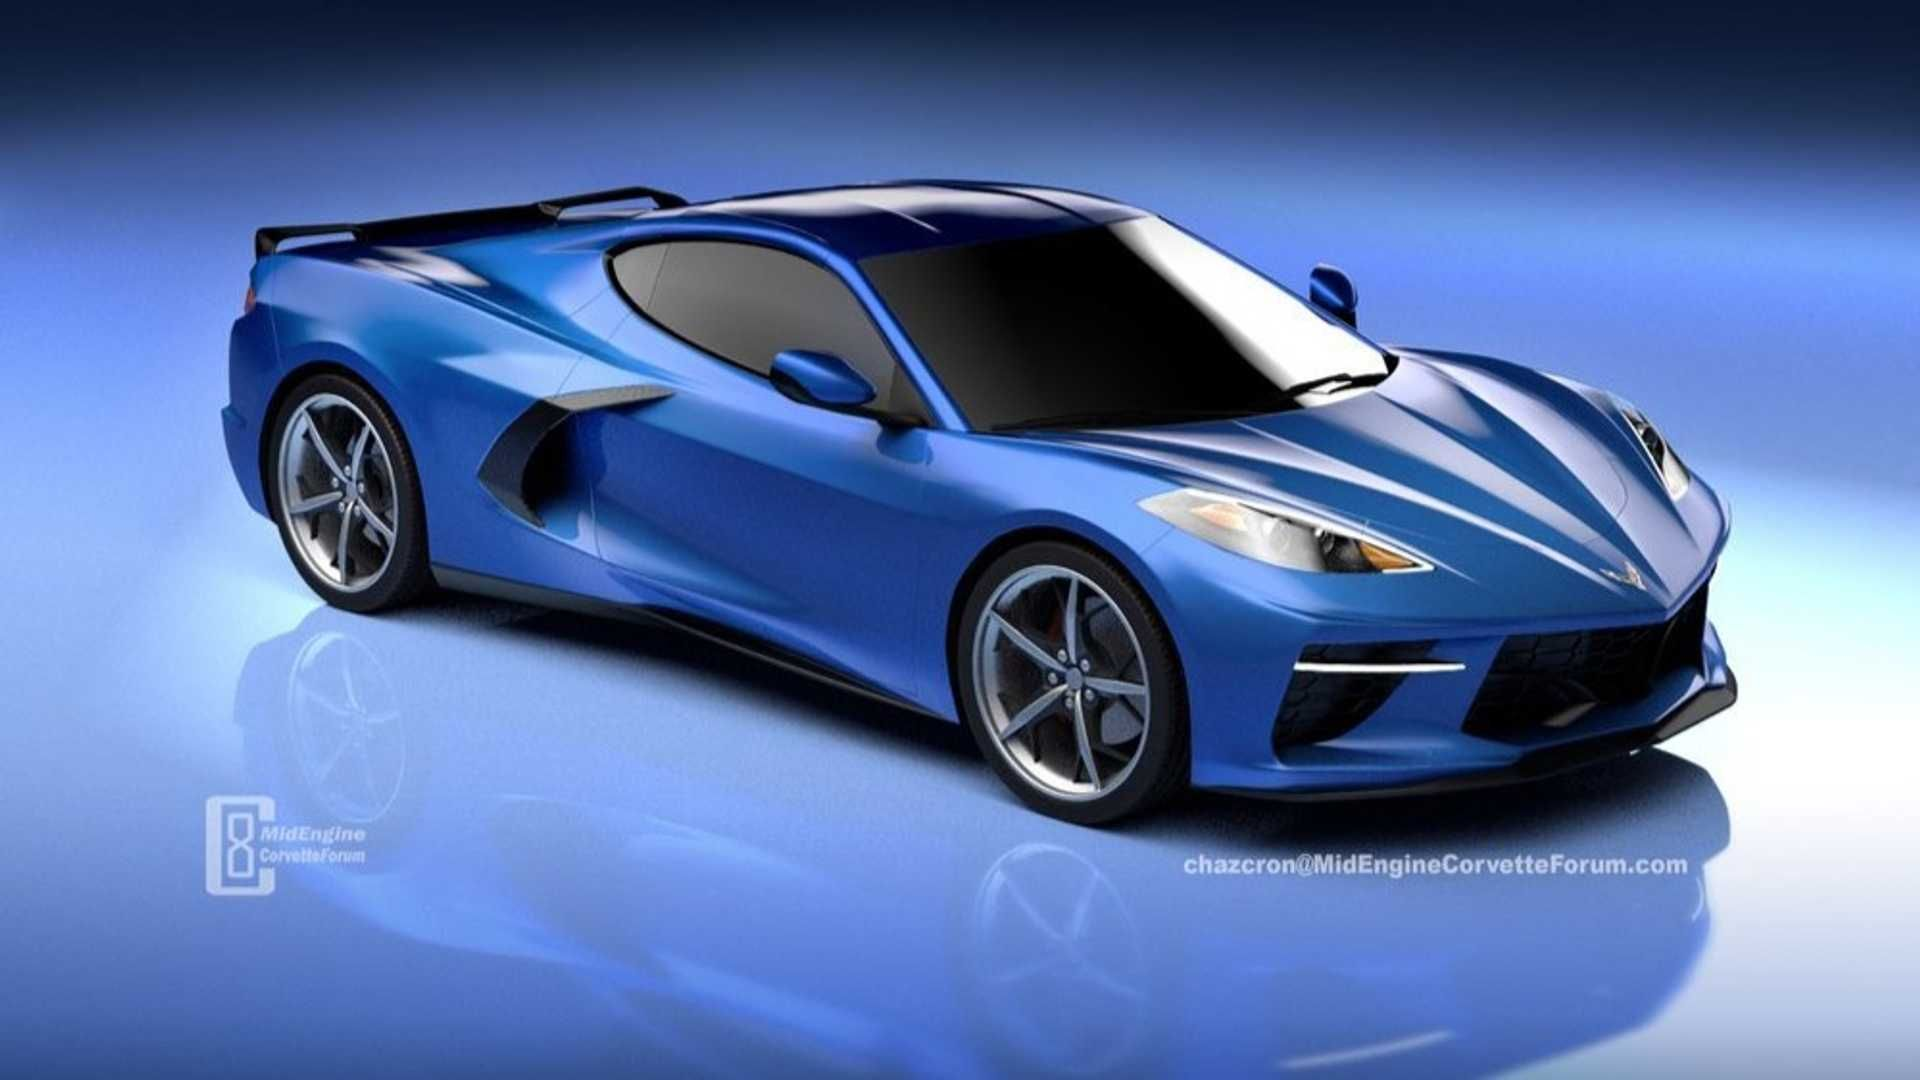 New Rendering Of The Mid Engined 2020 Chevy C8 Corvette Gives Us A More Down To Earth Look Super Cars Corvette Latest Cars